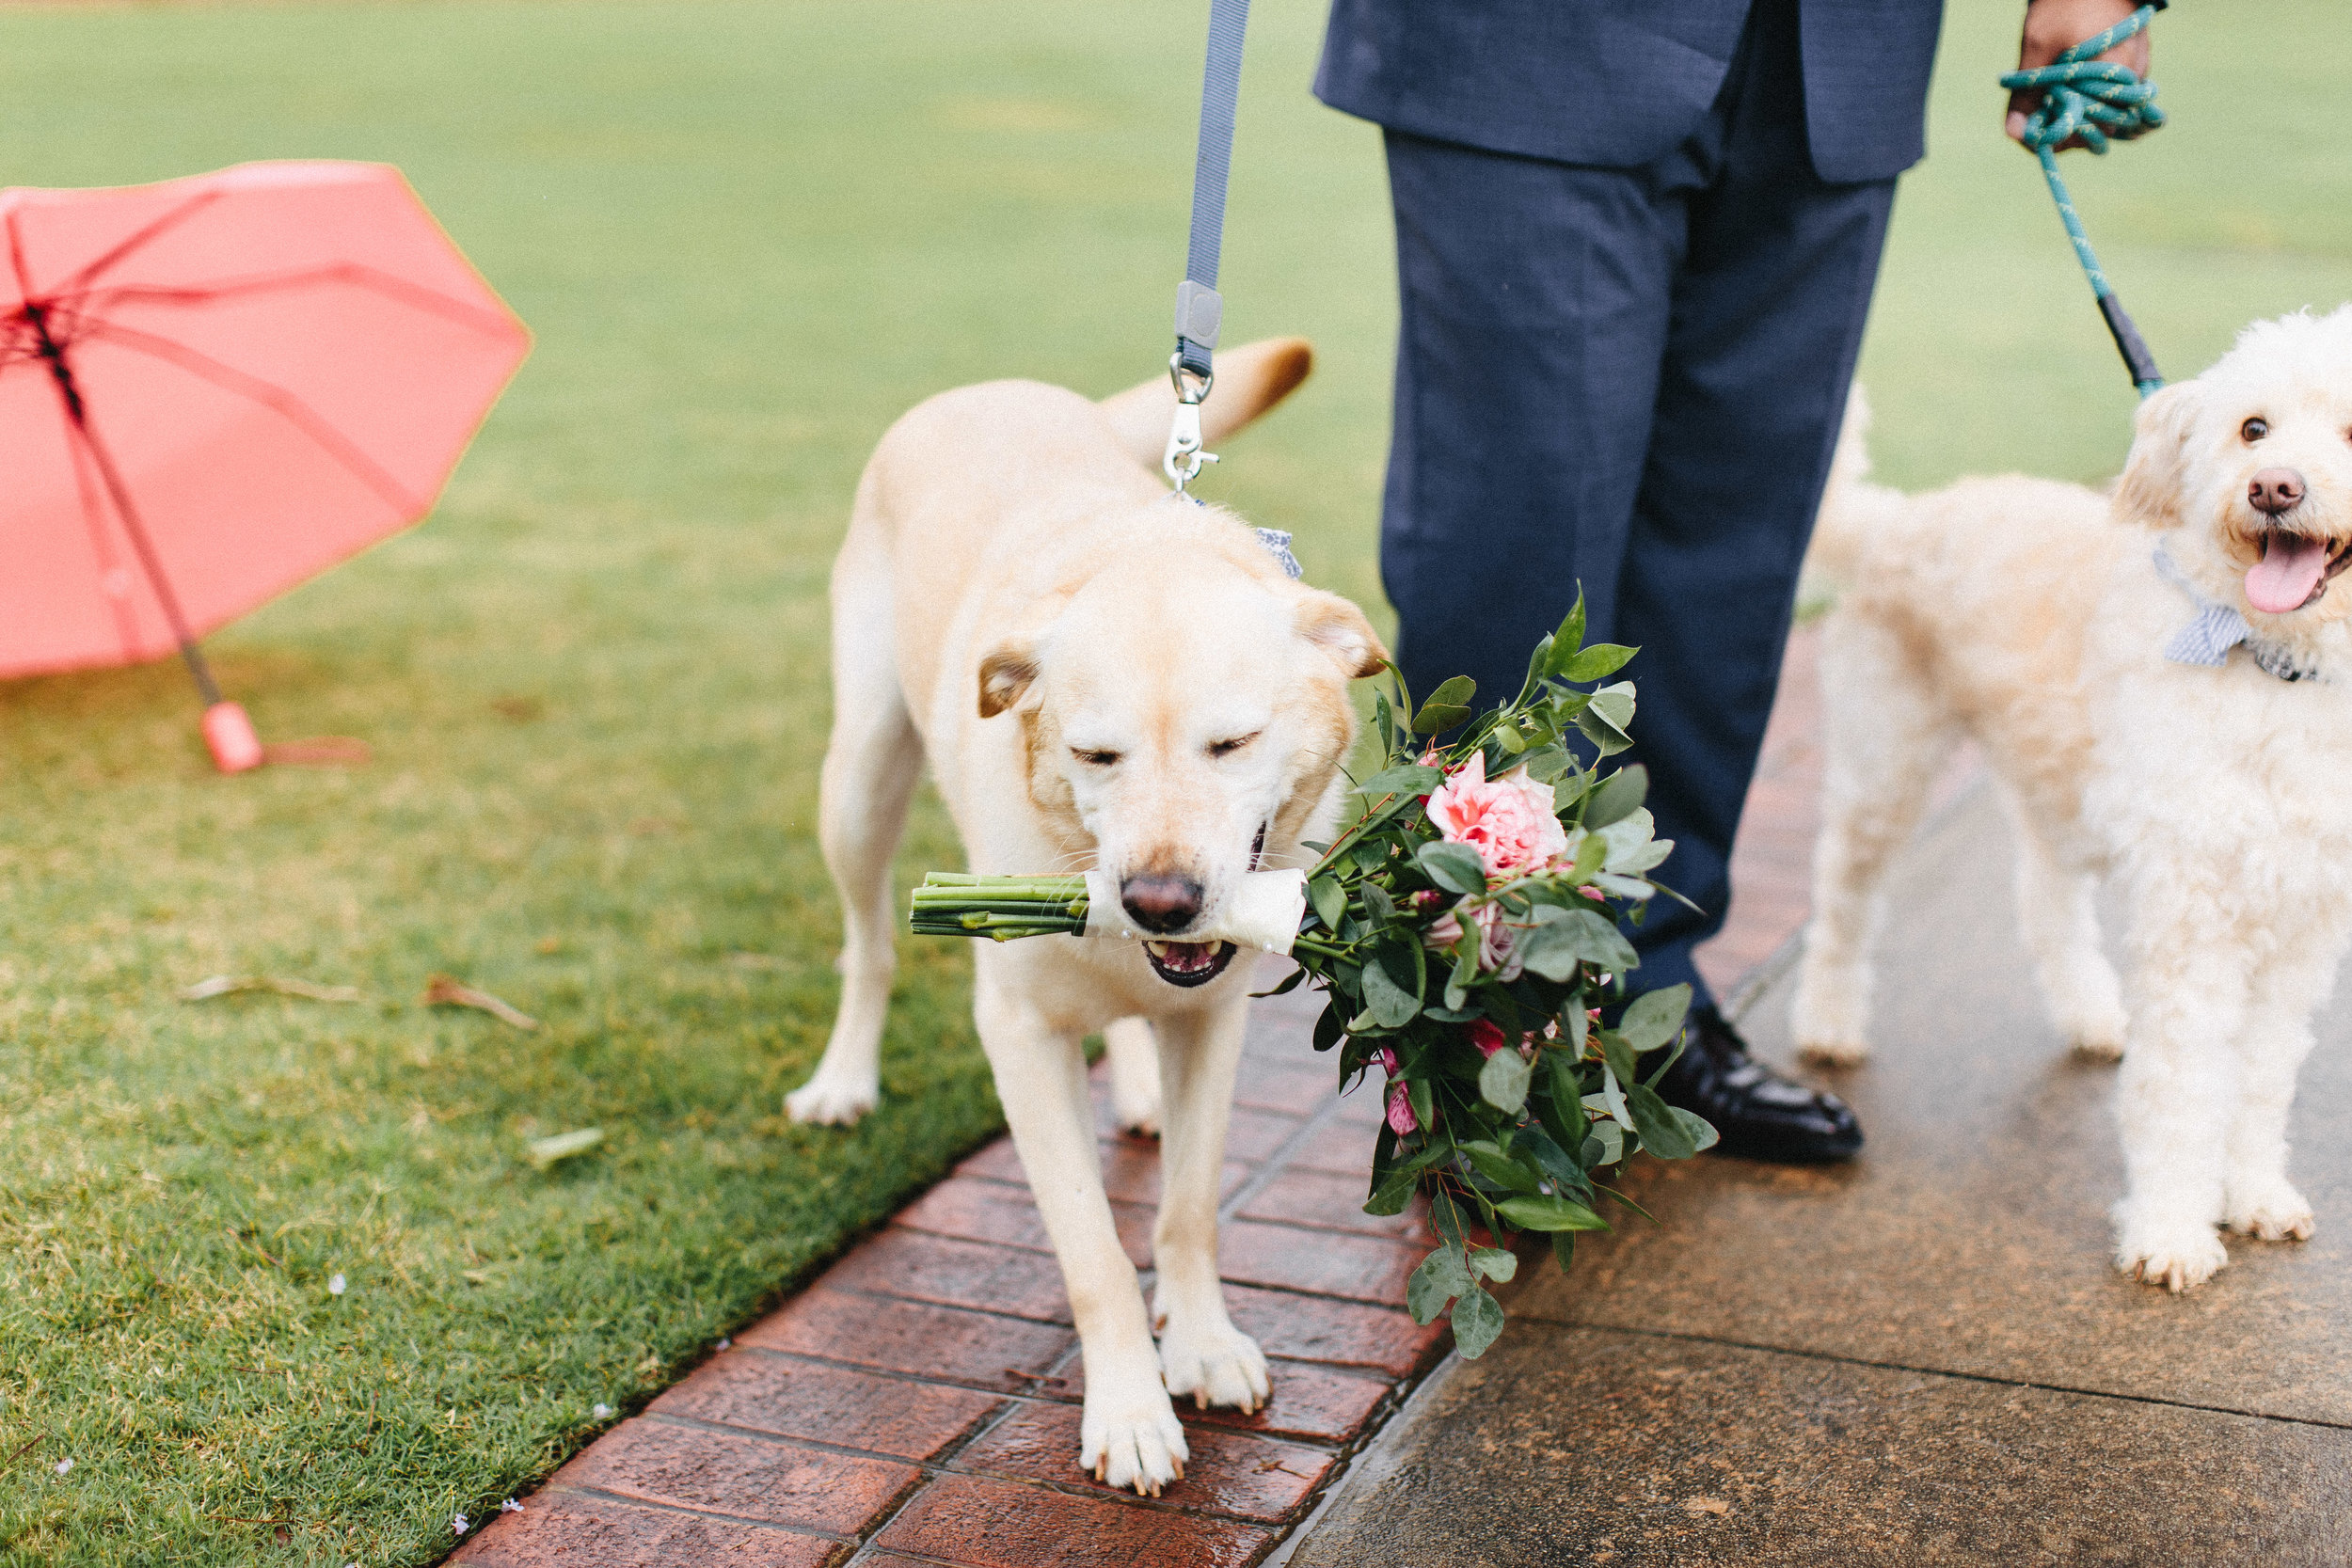 newnan_georgia_elegant_rainy_park_elopement_dogs_pups_tiny_wedding_backless_dress_blue_suit_georgia_atlanta_photographer_1293.jpg